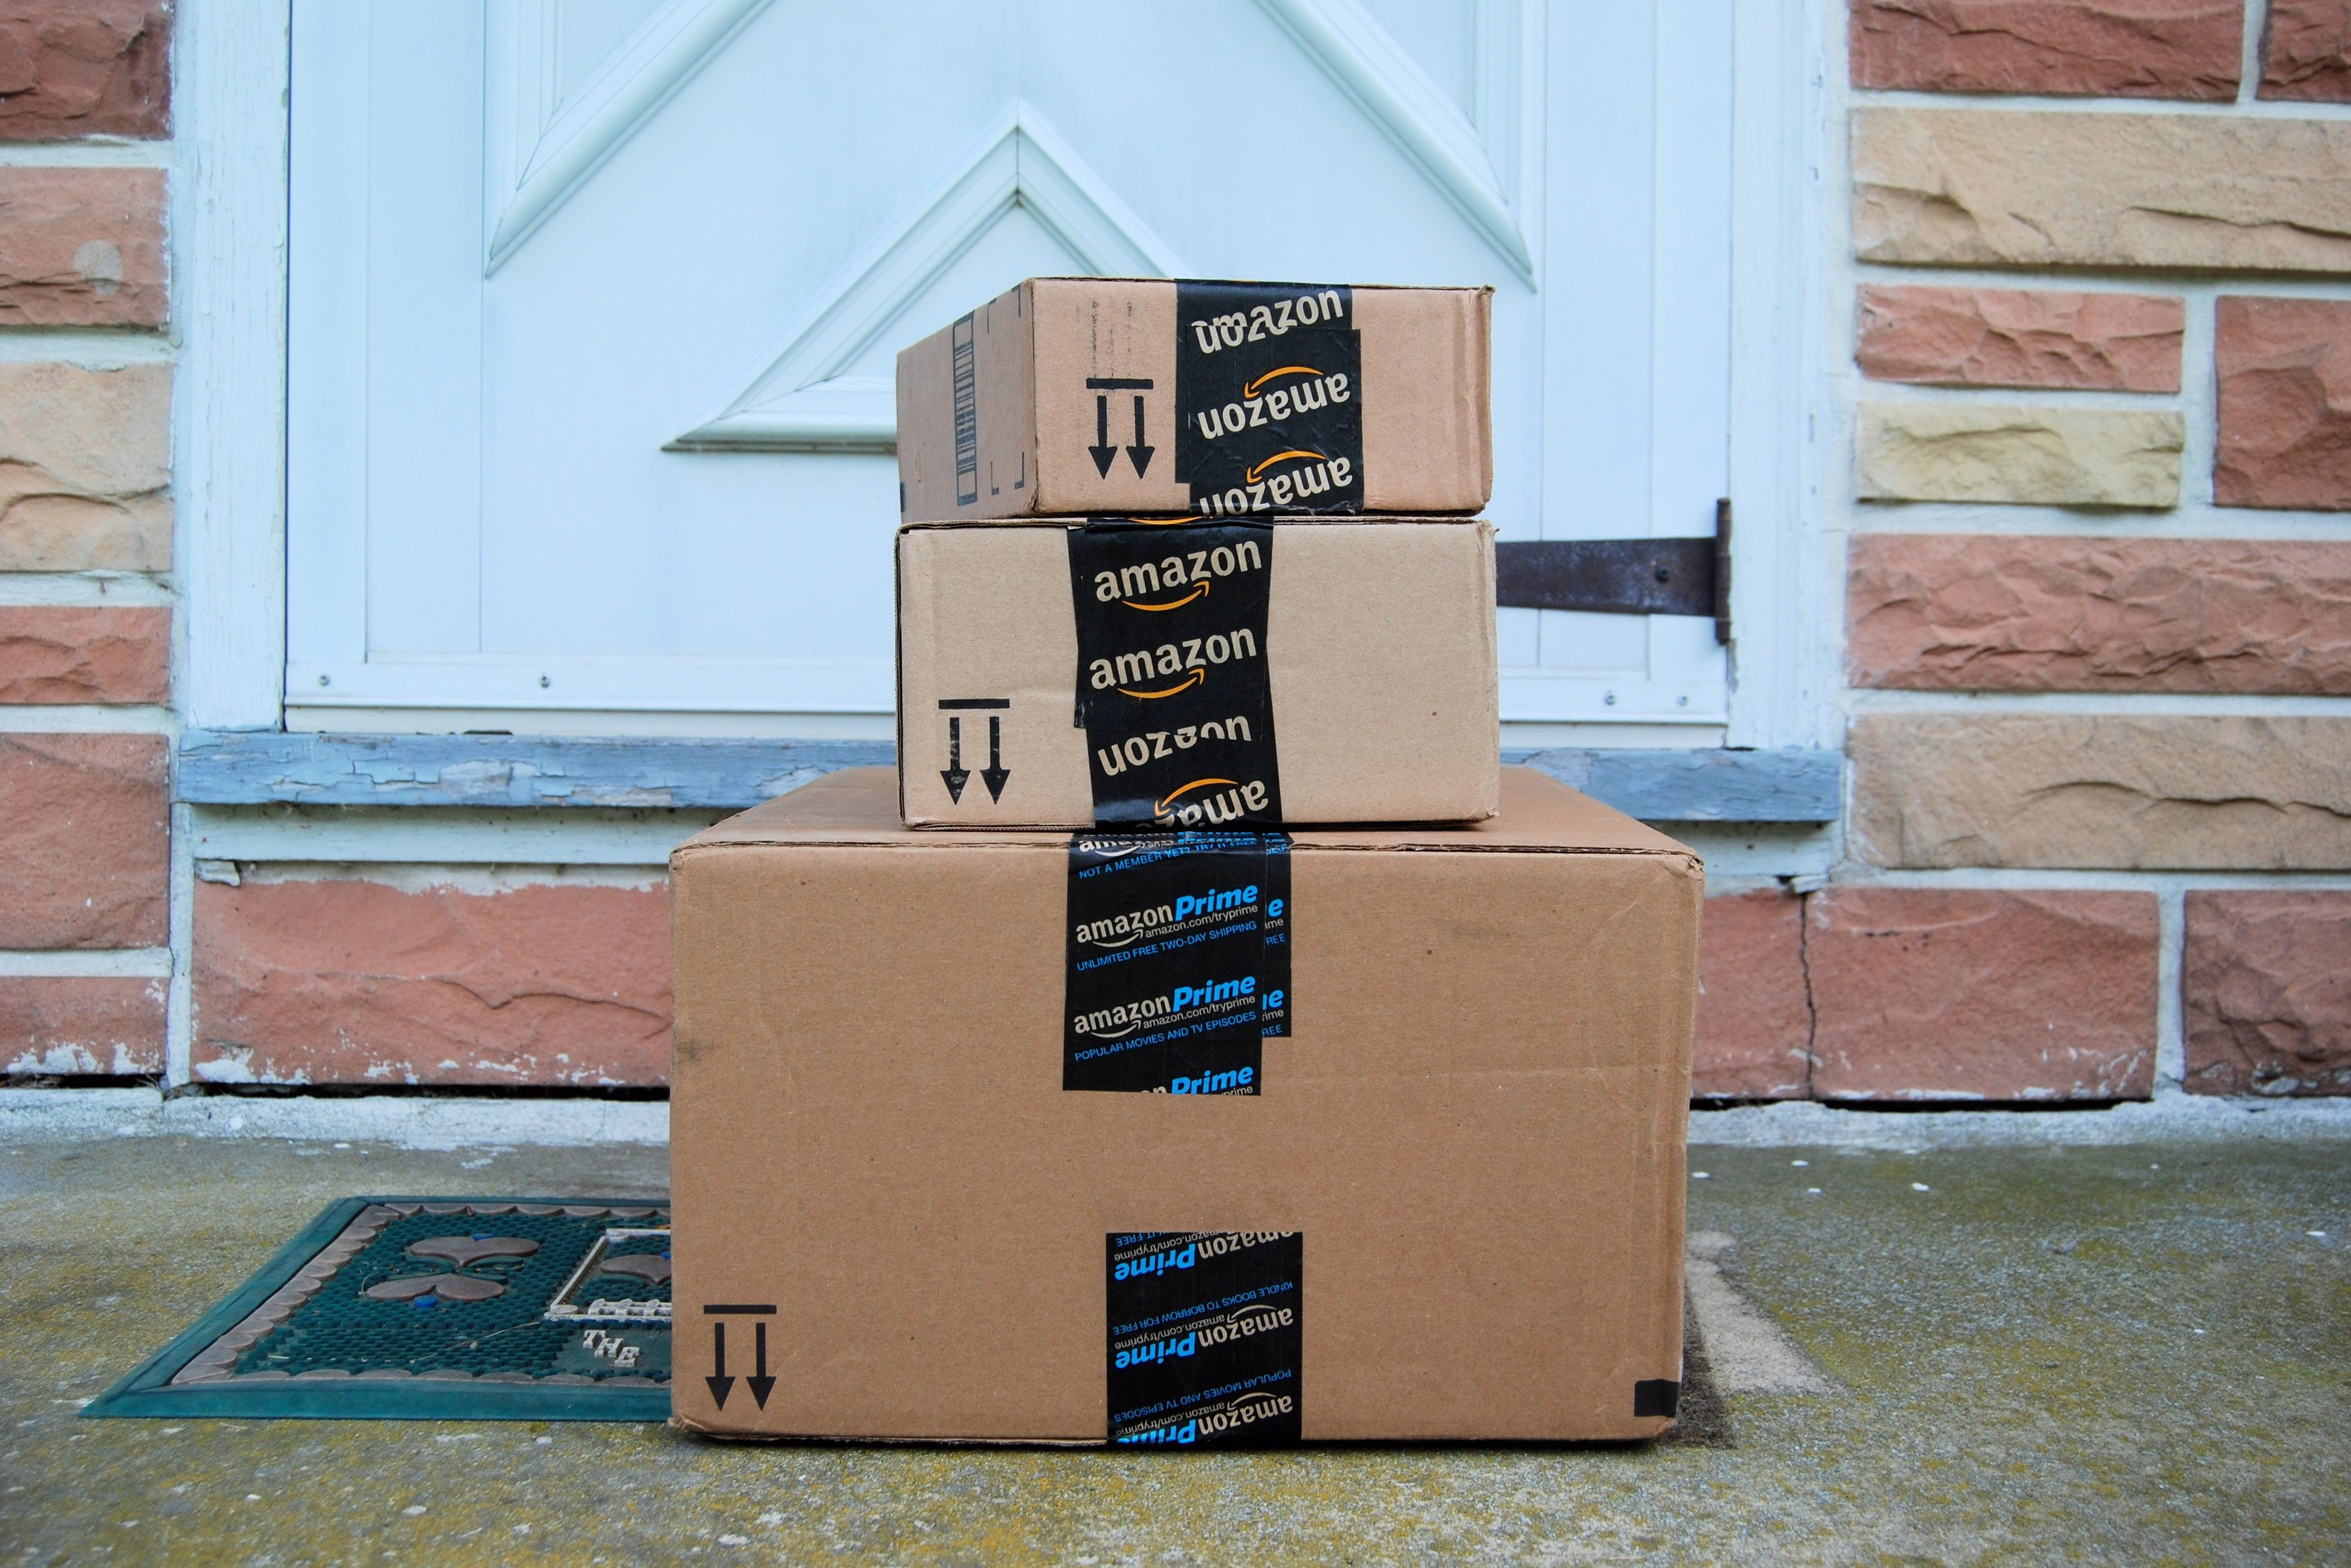 11 Things Amazon Won't Sell Anymore